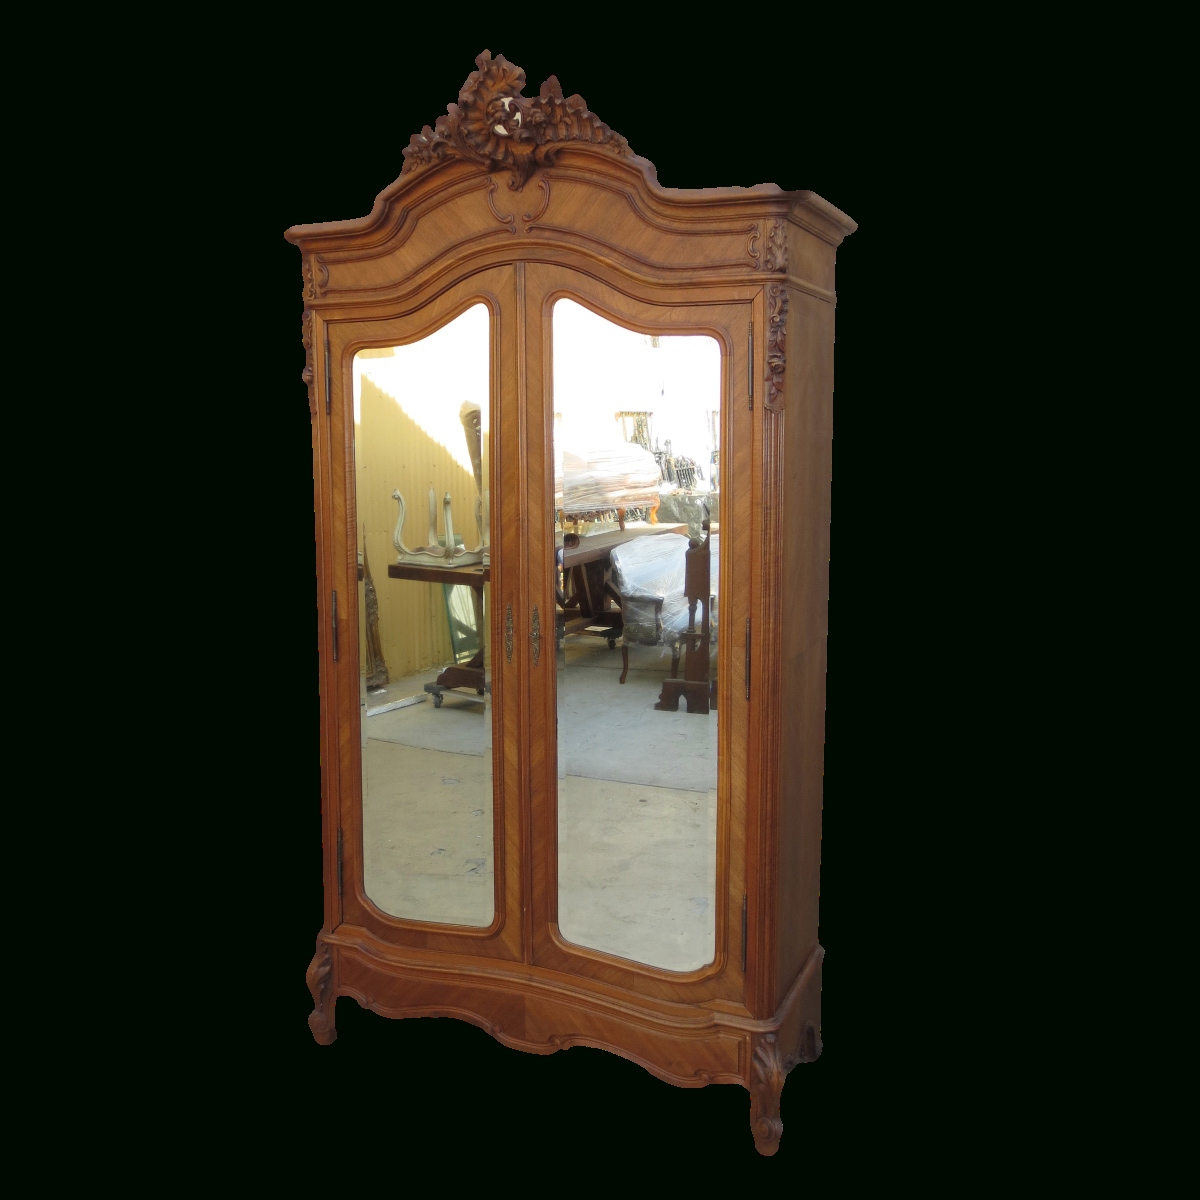 Antique Armoires And Antique Wardrobes regarding French Antique Wardrobes (Image 5 of 15)